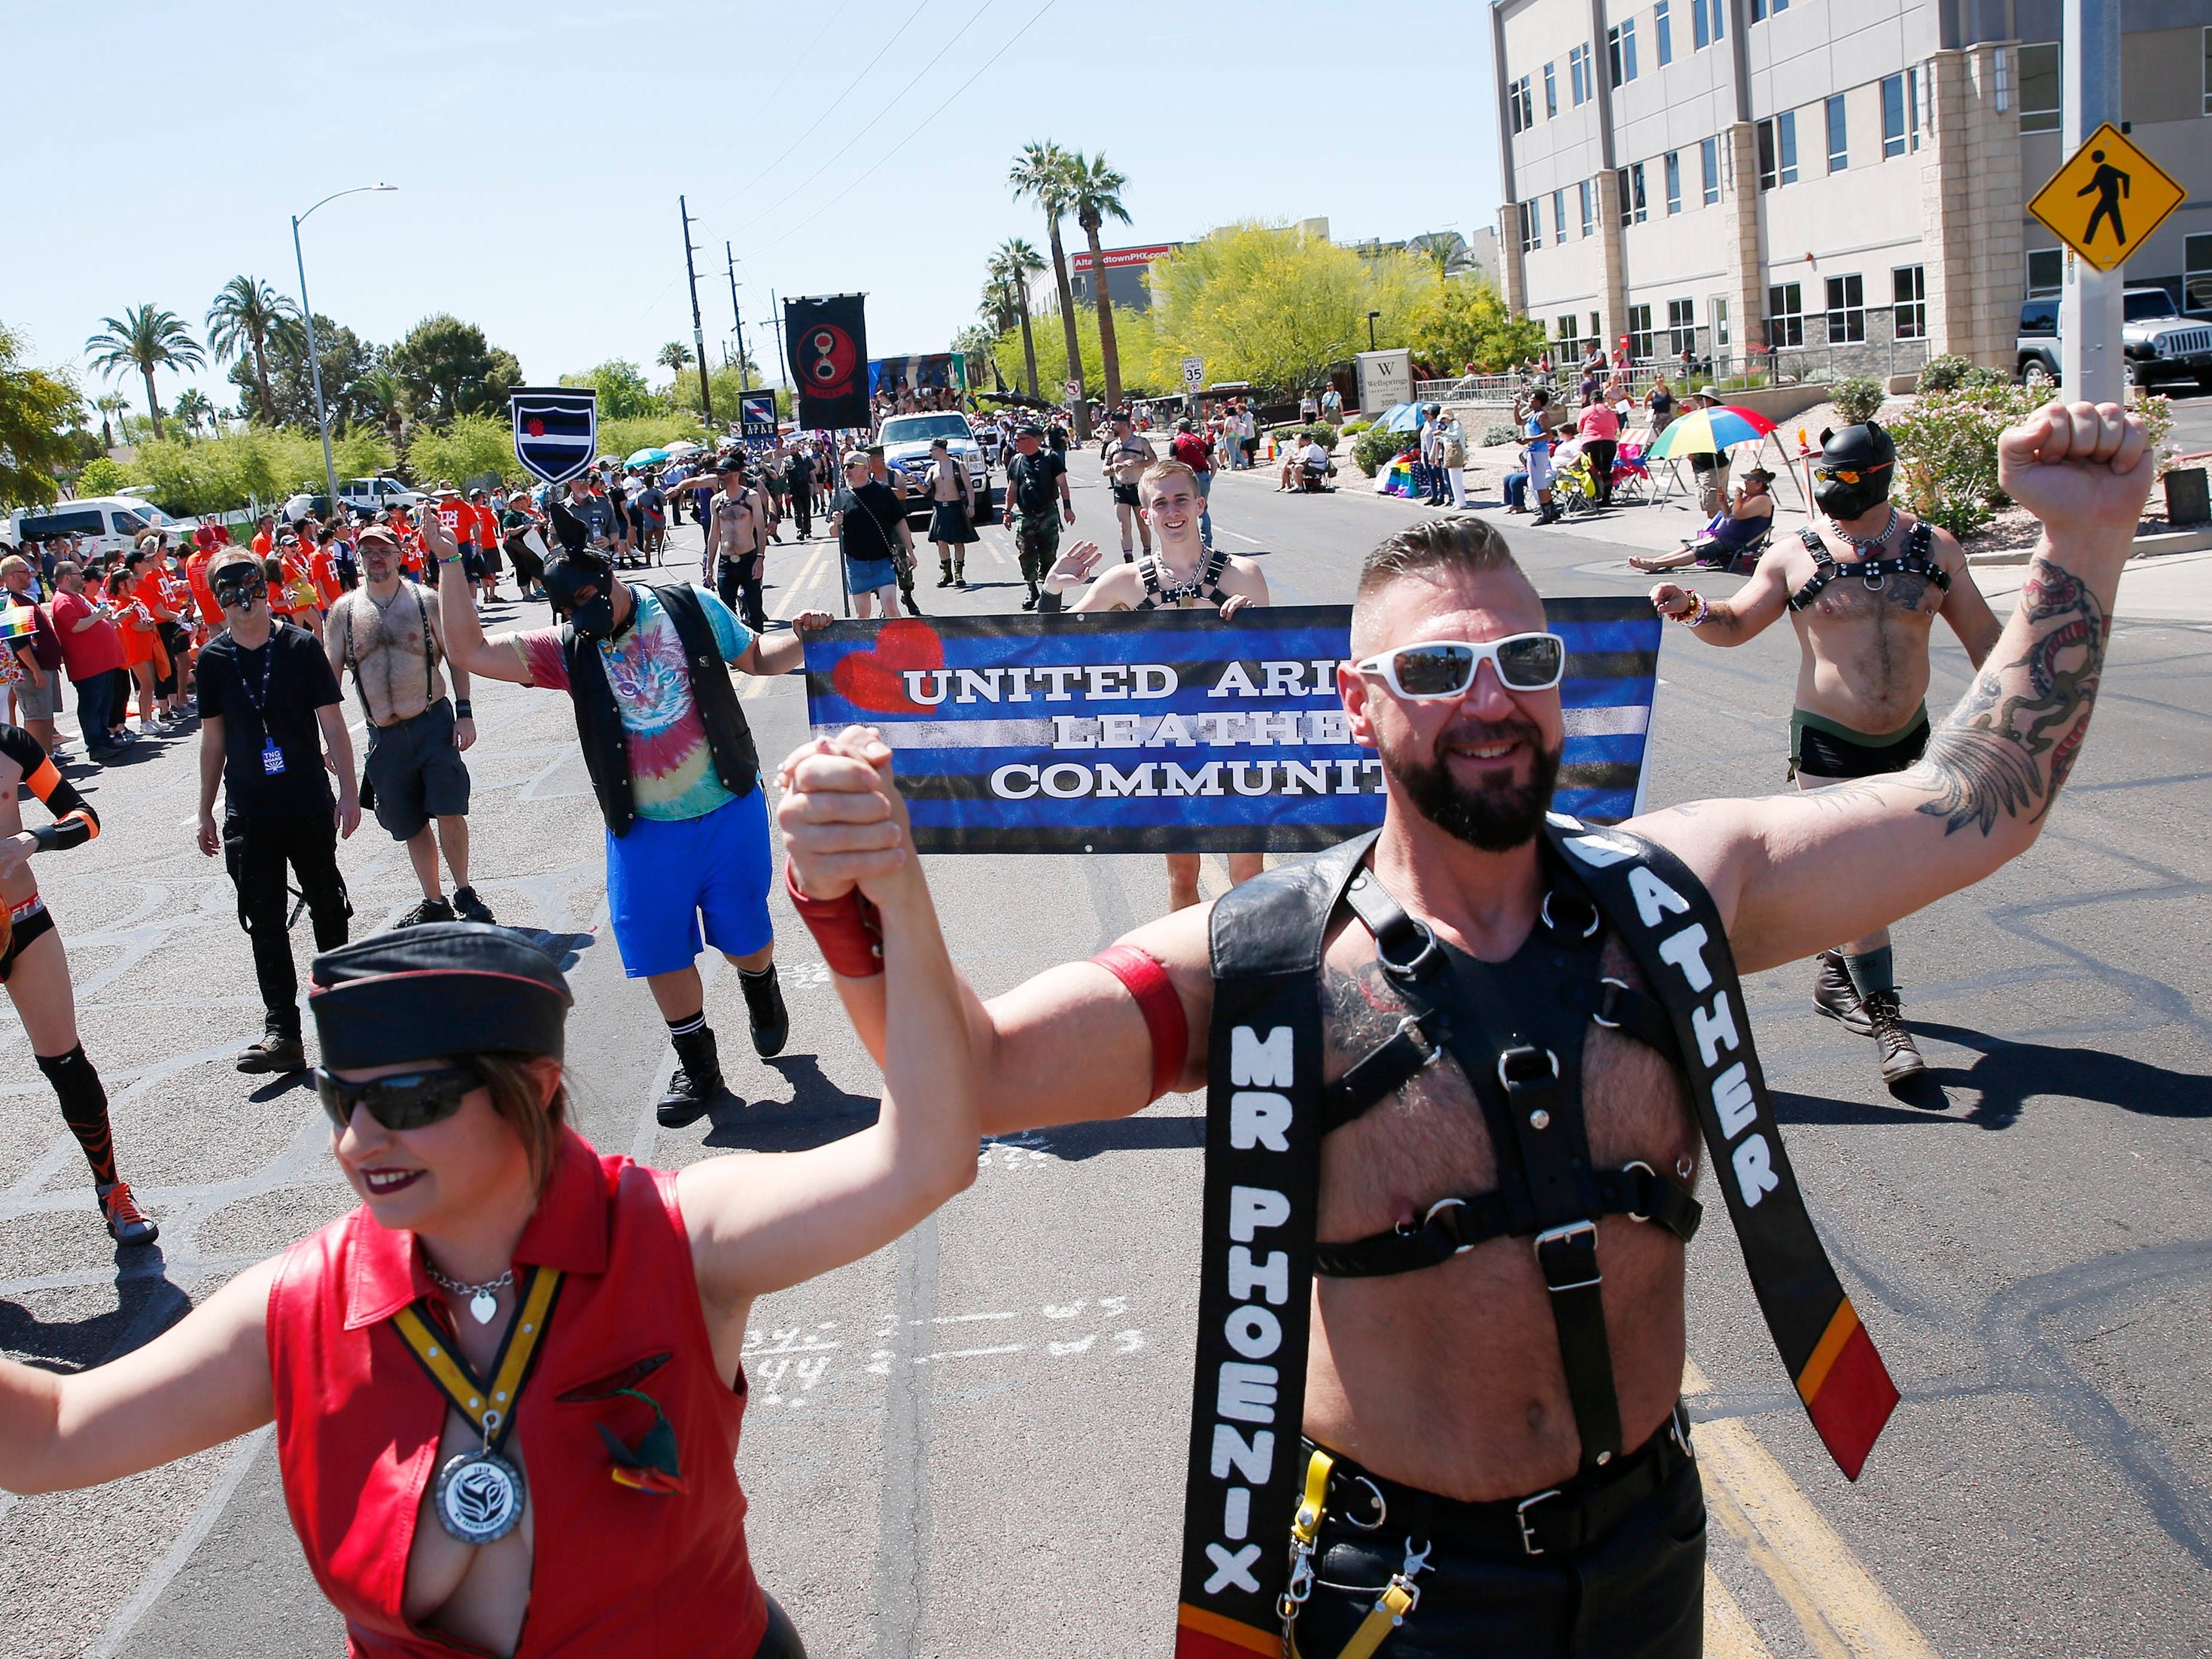 Participants with United Arizona Leather Community march during the Phoenix Pride Parade on April 7, 2019.